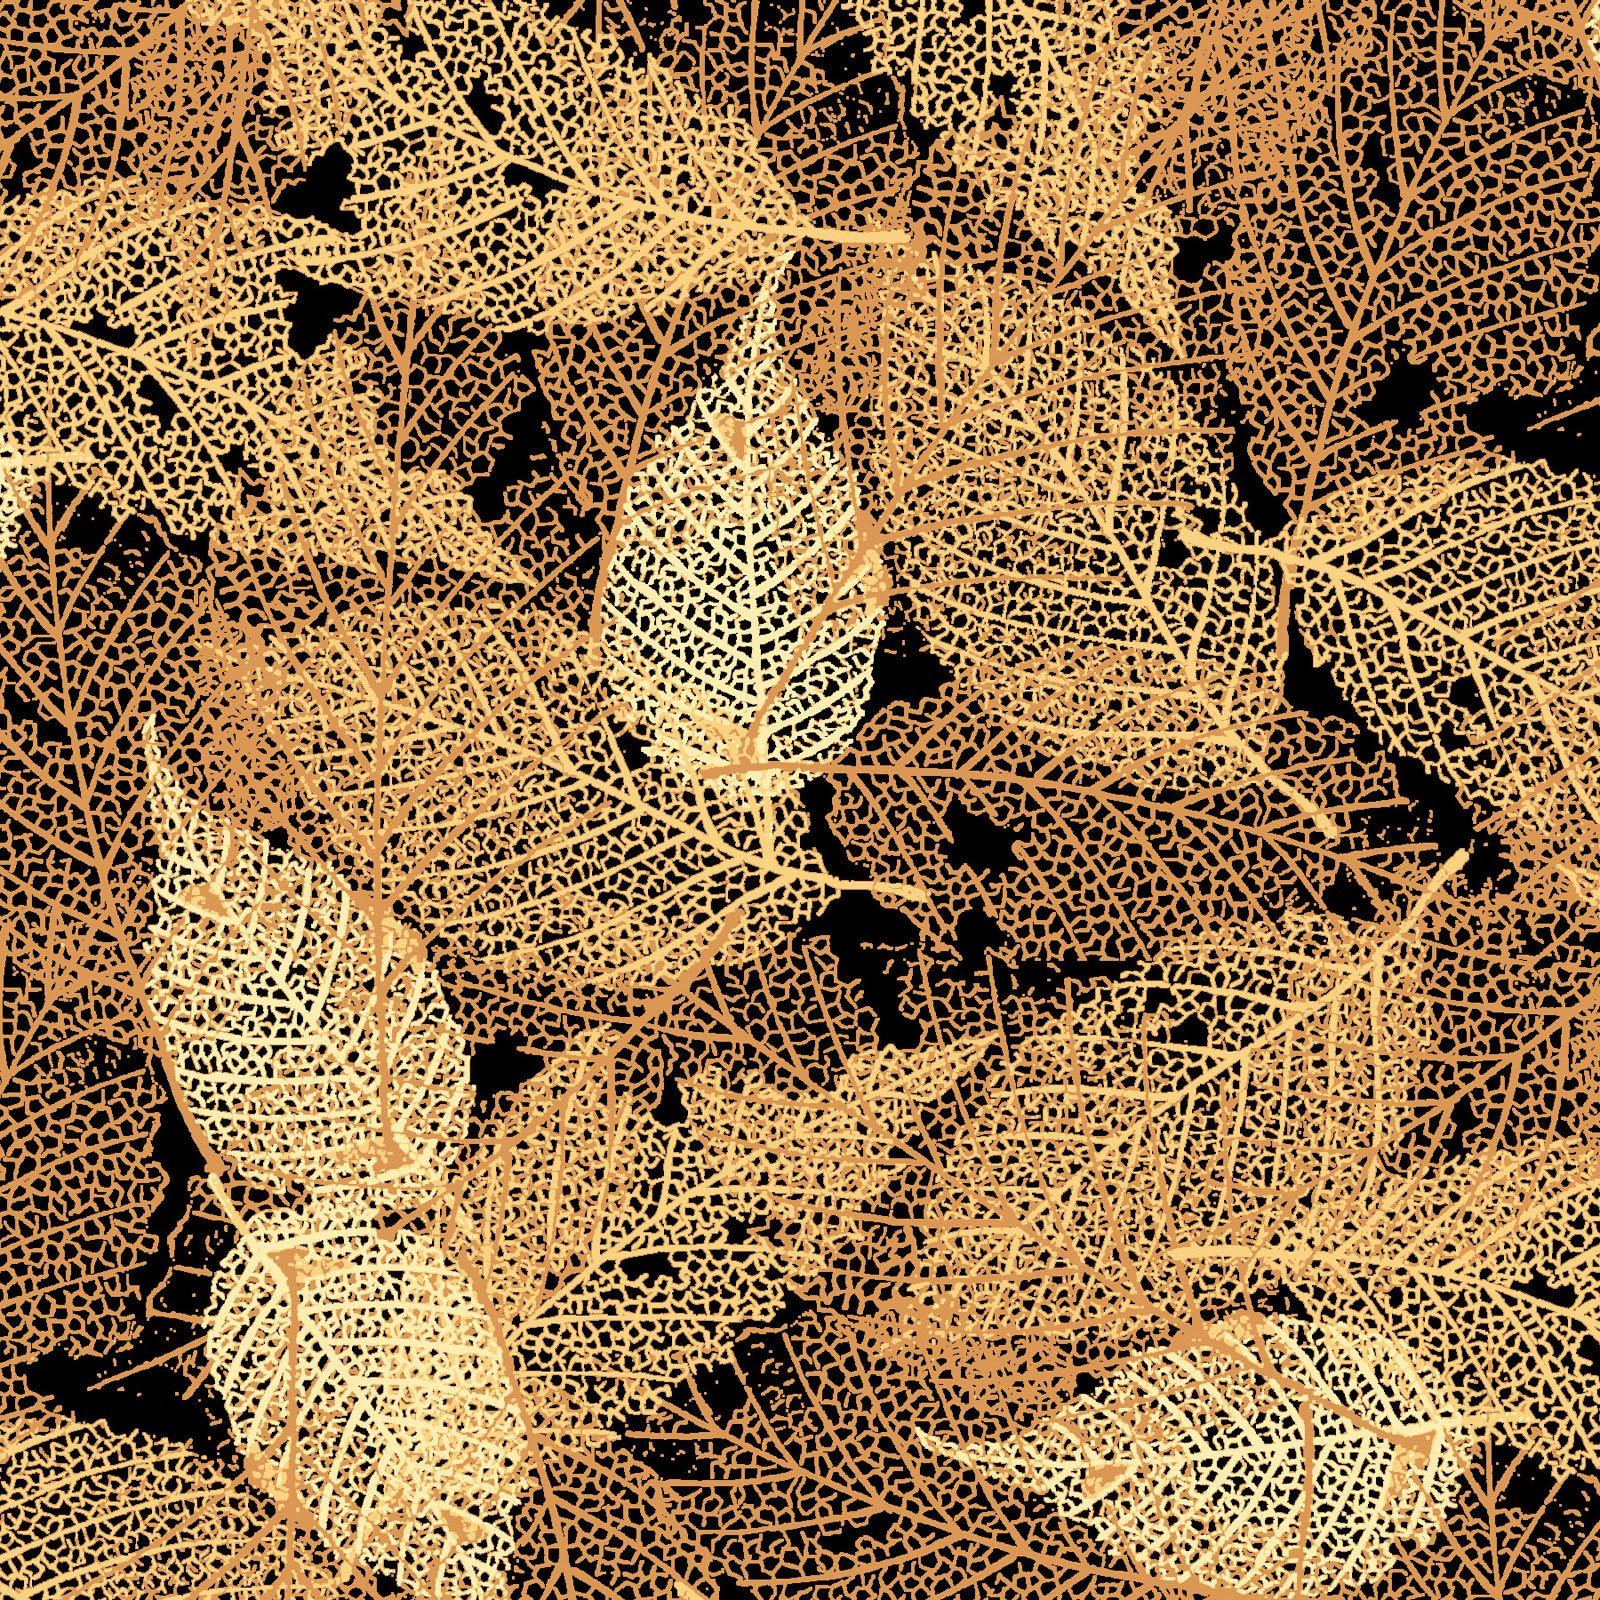 FOLI-4478 AU - FOLIAGE BY P&B BOUTIQUE TEXTURE LEAVES GOLD - ARRIVING IN MAY 2021